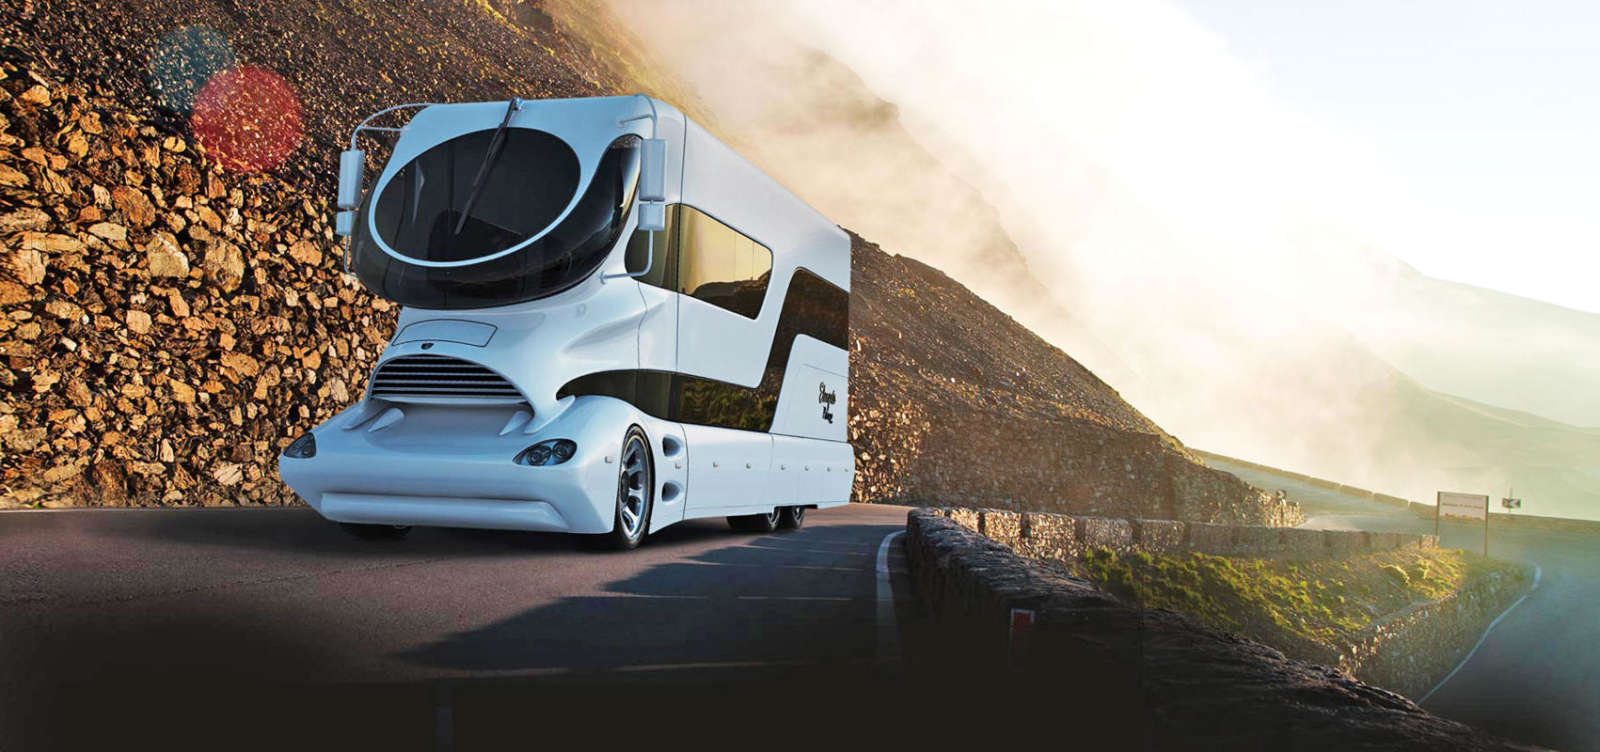 World S Most Expensive Rv Sold In Dubai Motoroids